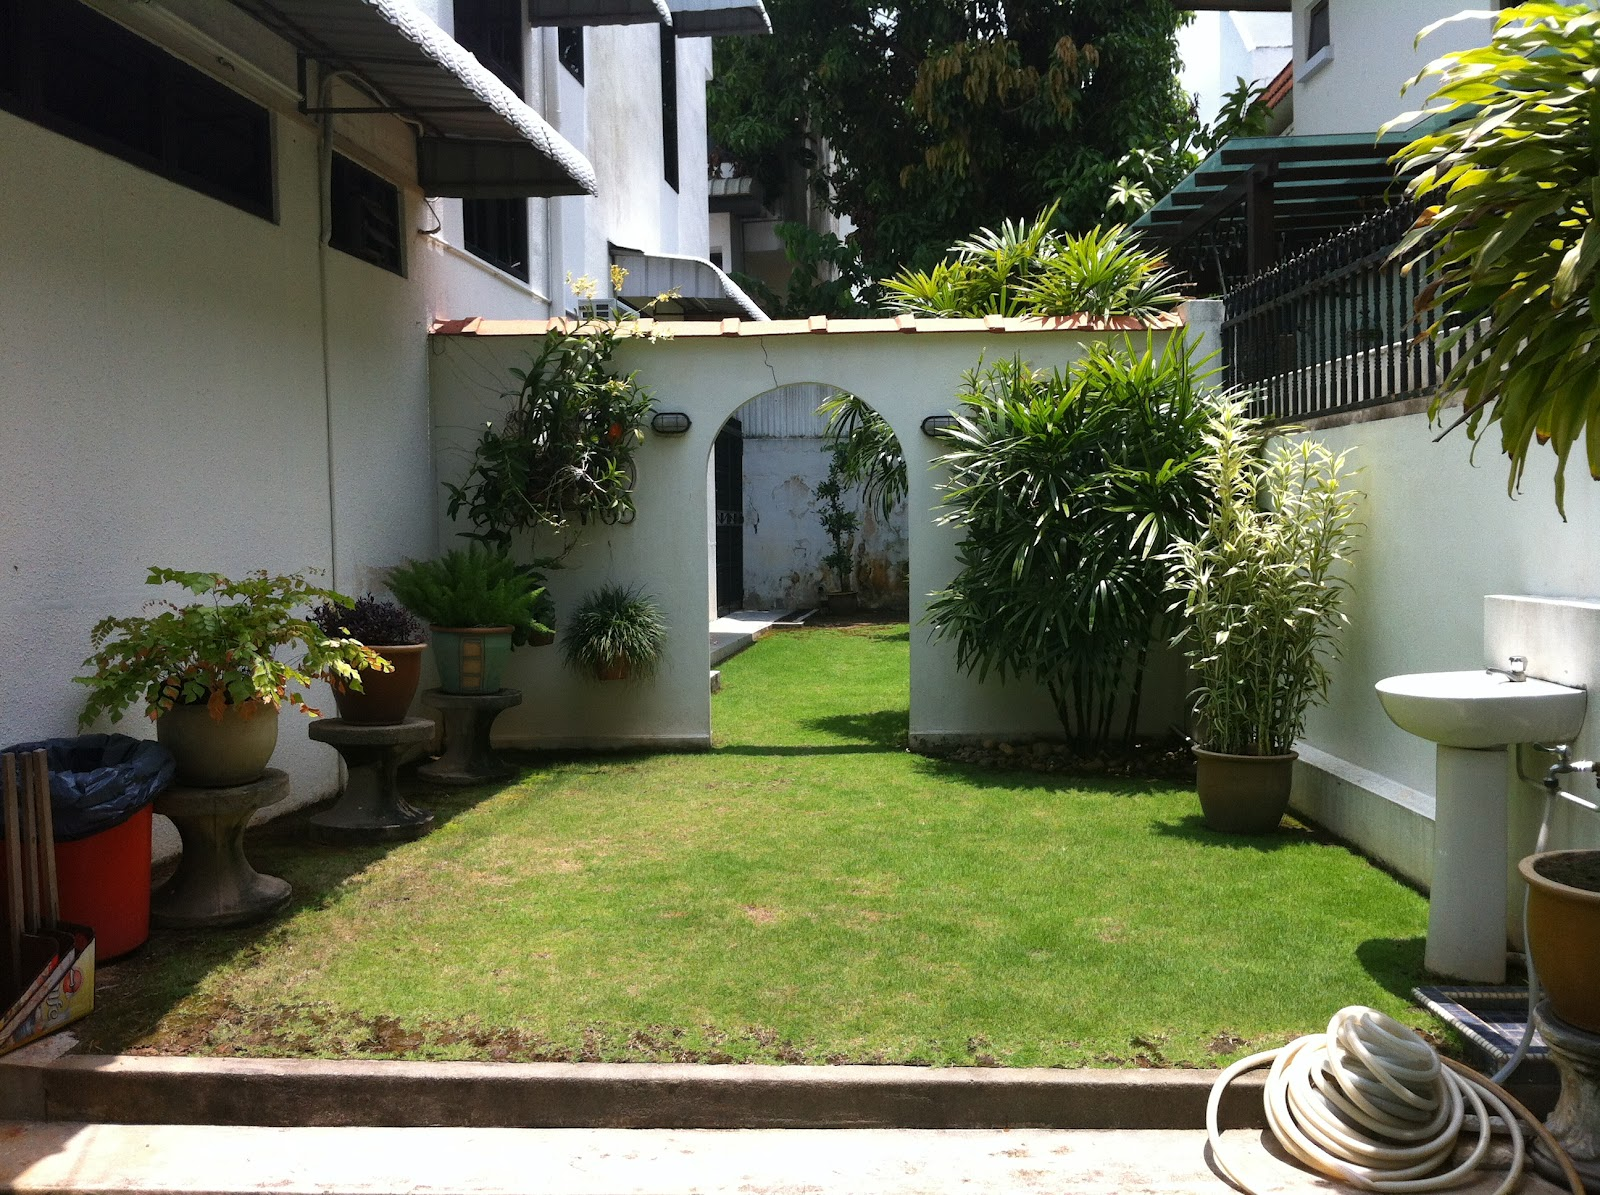 Penang I Property - Penang Property, House For Sale and Rent  title=